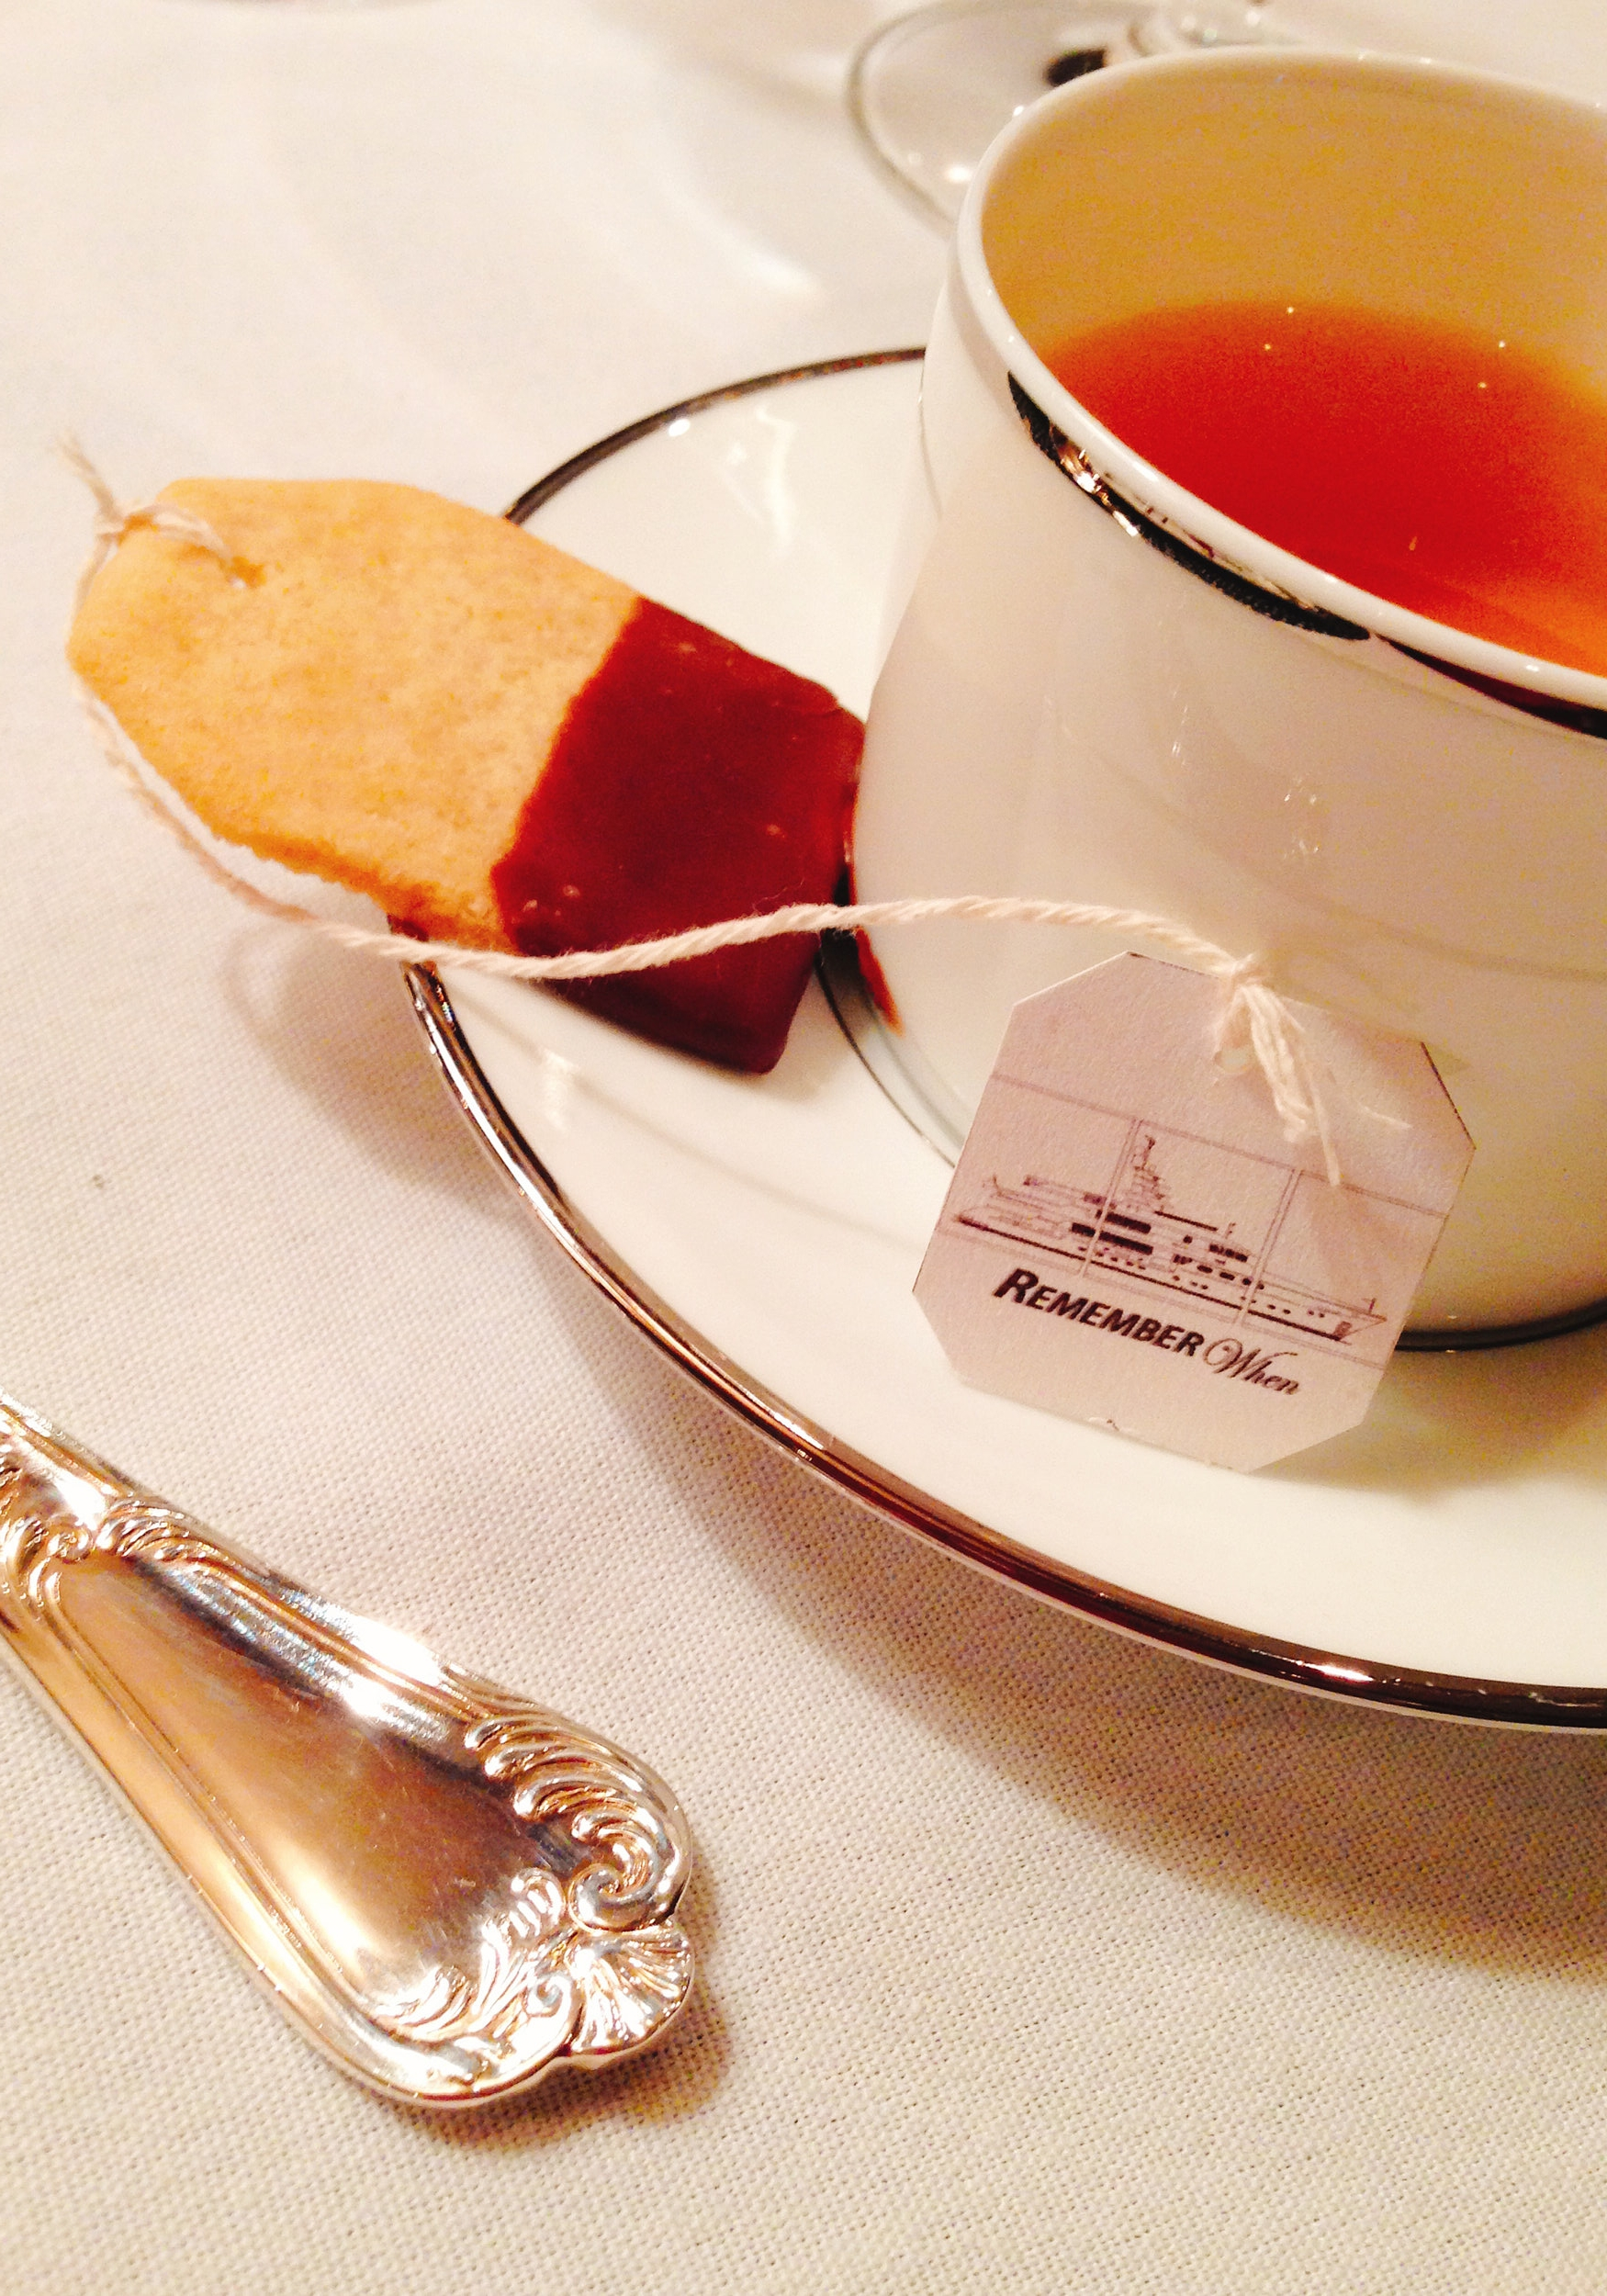 Tea time on Remember When with custom made tea-bag chocolate-dipped biscuits.